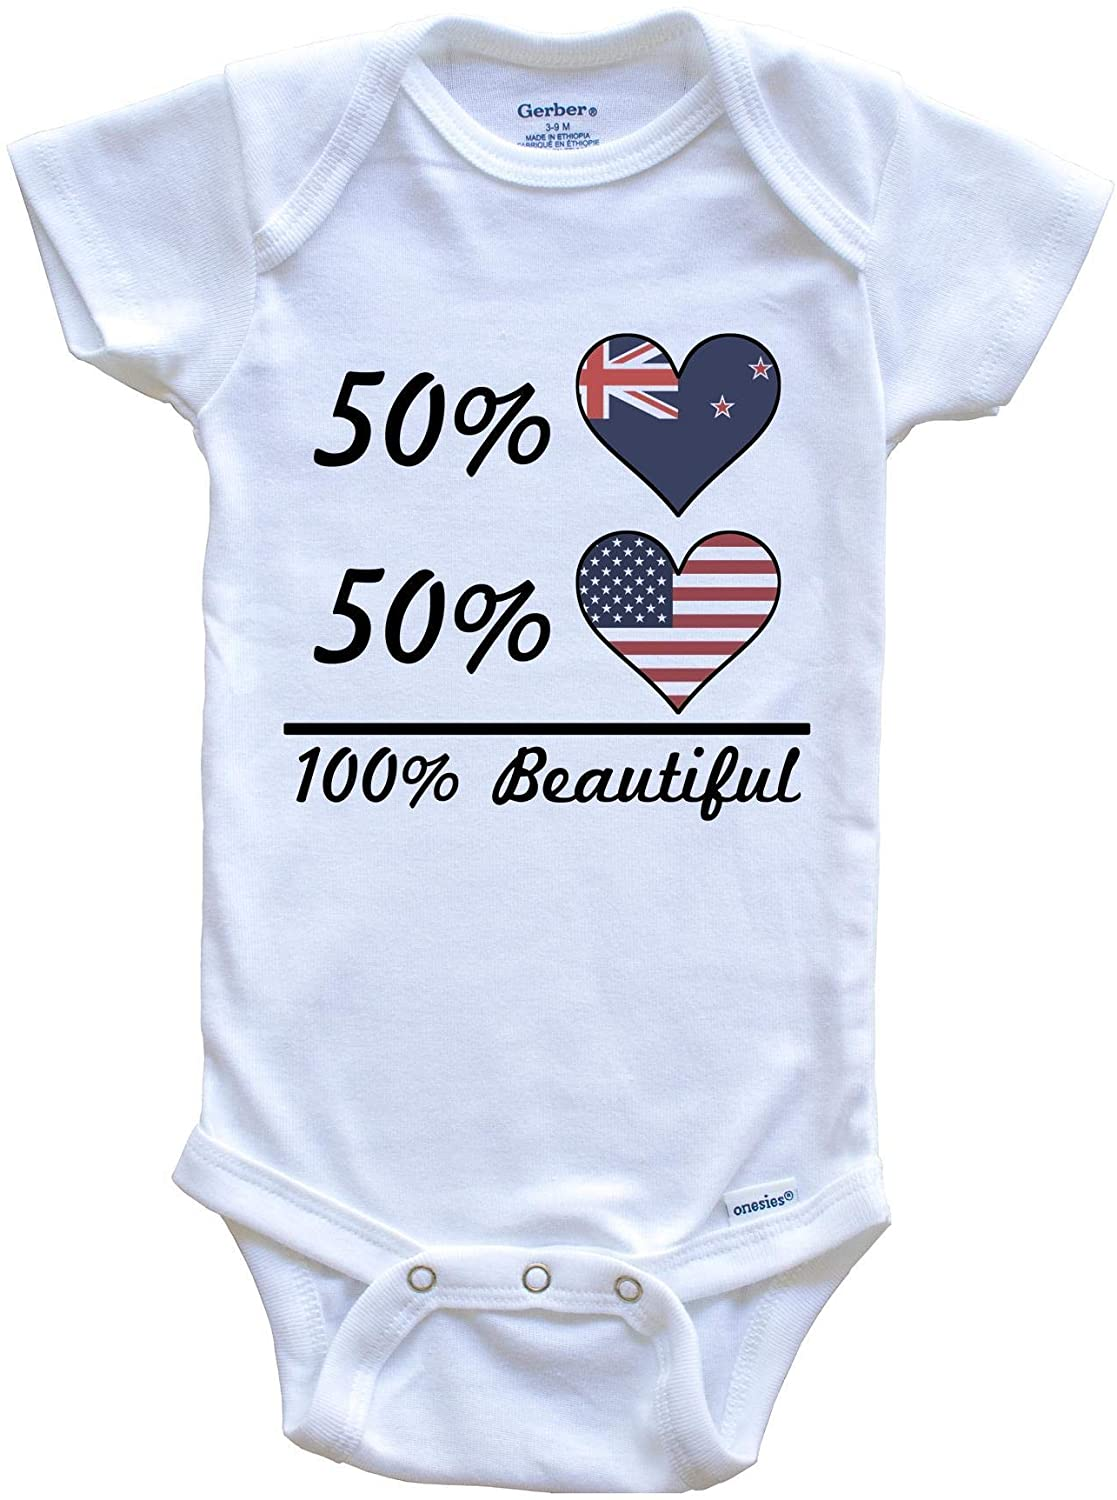 Really Awesome Shirts 50% Kiwi 50% American 100% Beautiful New Zealand Flag Heart Baby Onesie